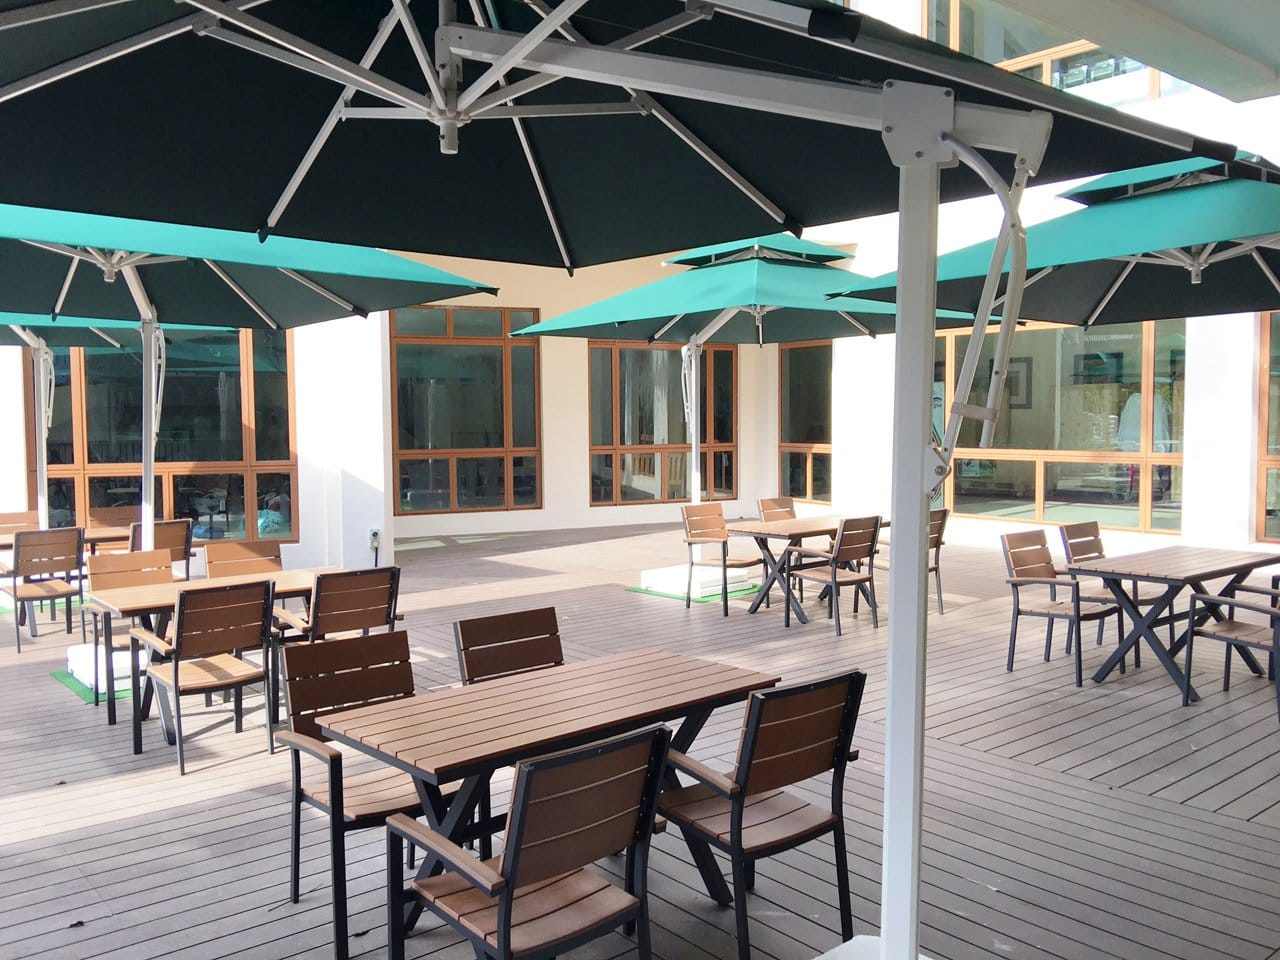 Yishun Safra by Trendbuild | Product Seen: [Fossil Outdoor Armchair & Fossil Outdoor Dining Table - W1400]<br />